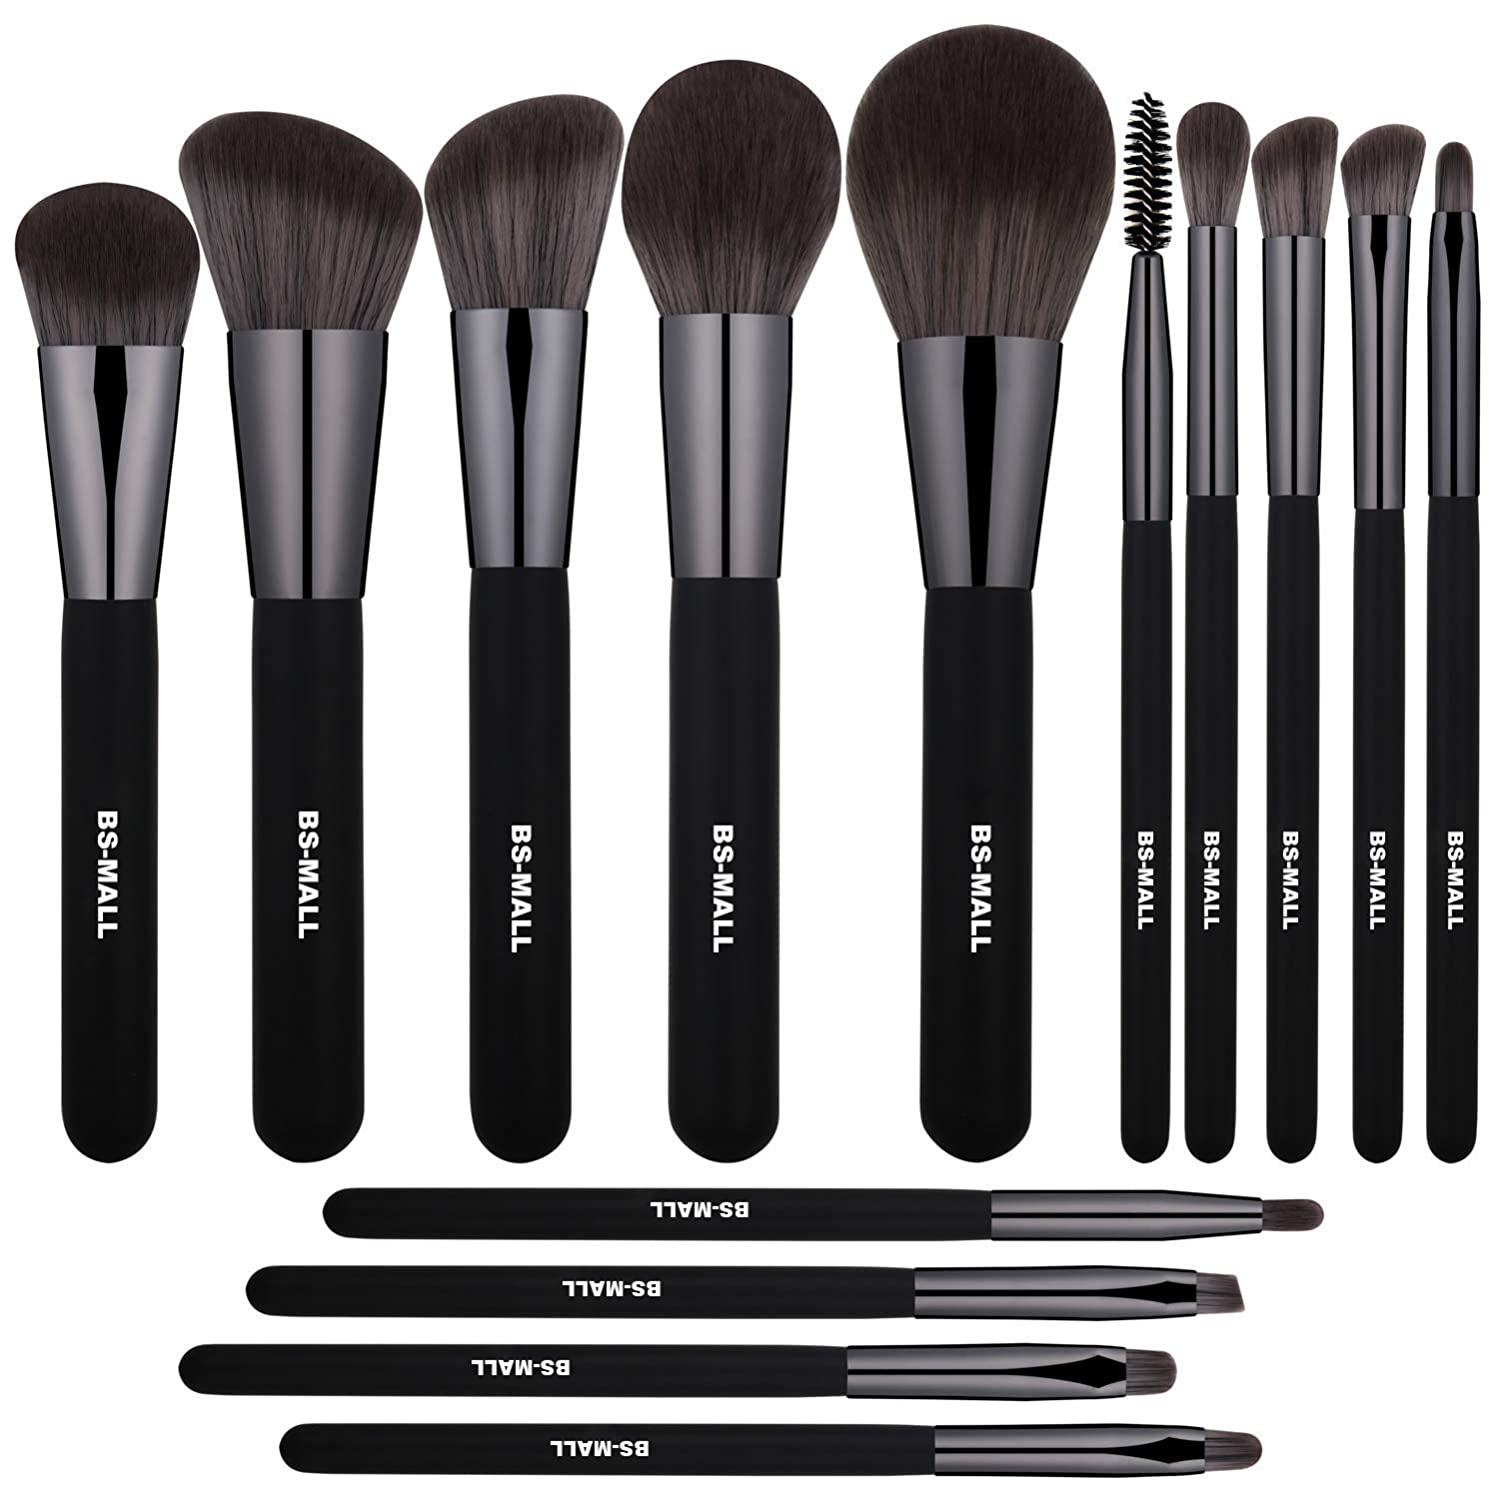 BS-MALL Makeup Brushes Premium Synthetic Foundation Powder Concealers Eye Shadows Silver Black Makeup Brush Sets(14 Pcs, Black)